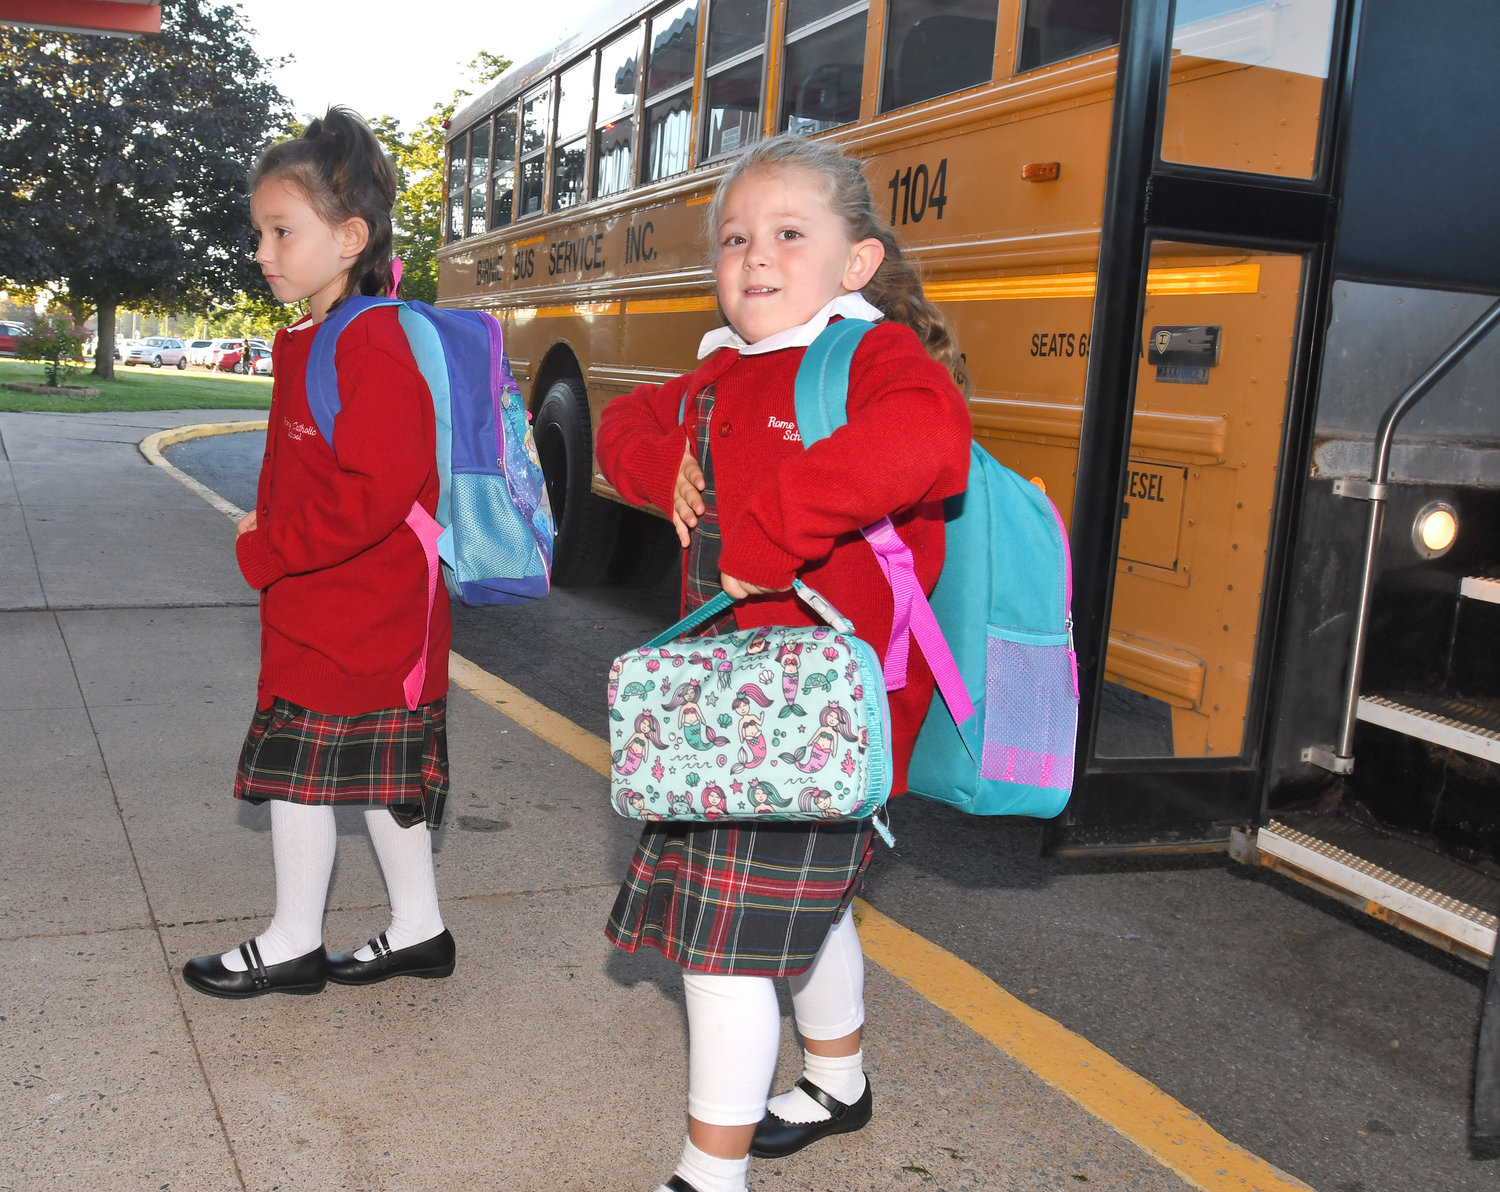 Rome Catholic students Milena Kittleman and Alessandra Schneider depart their bus Thursday morning on the first day of school. They are both kindergarteners.